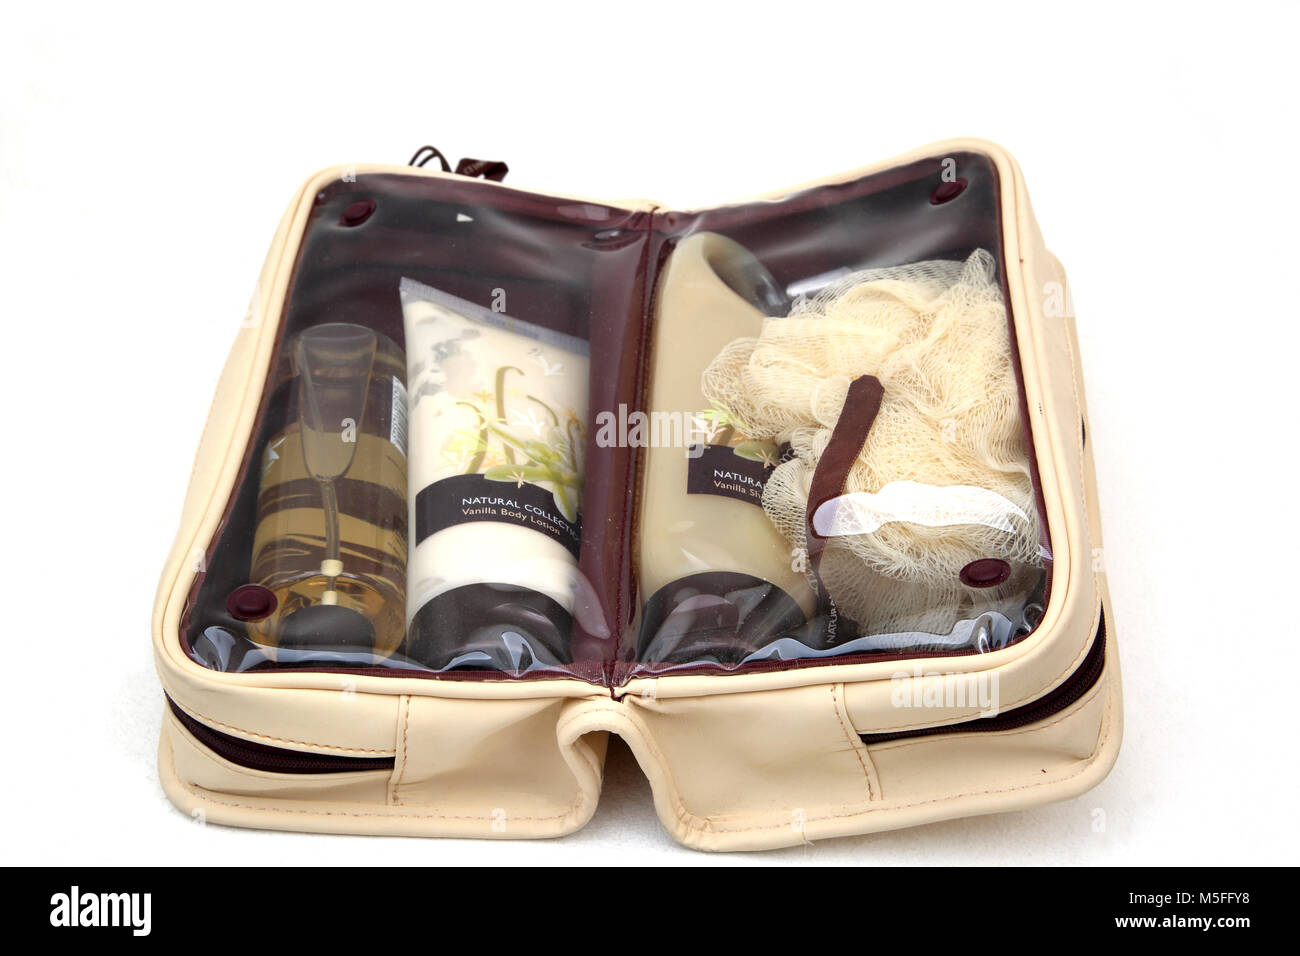 Boots Vanilla Natural Collection Toiletries - Stock Image